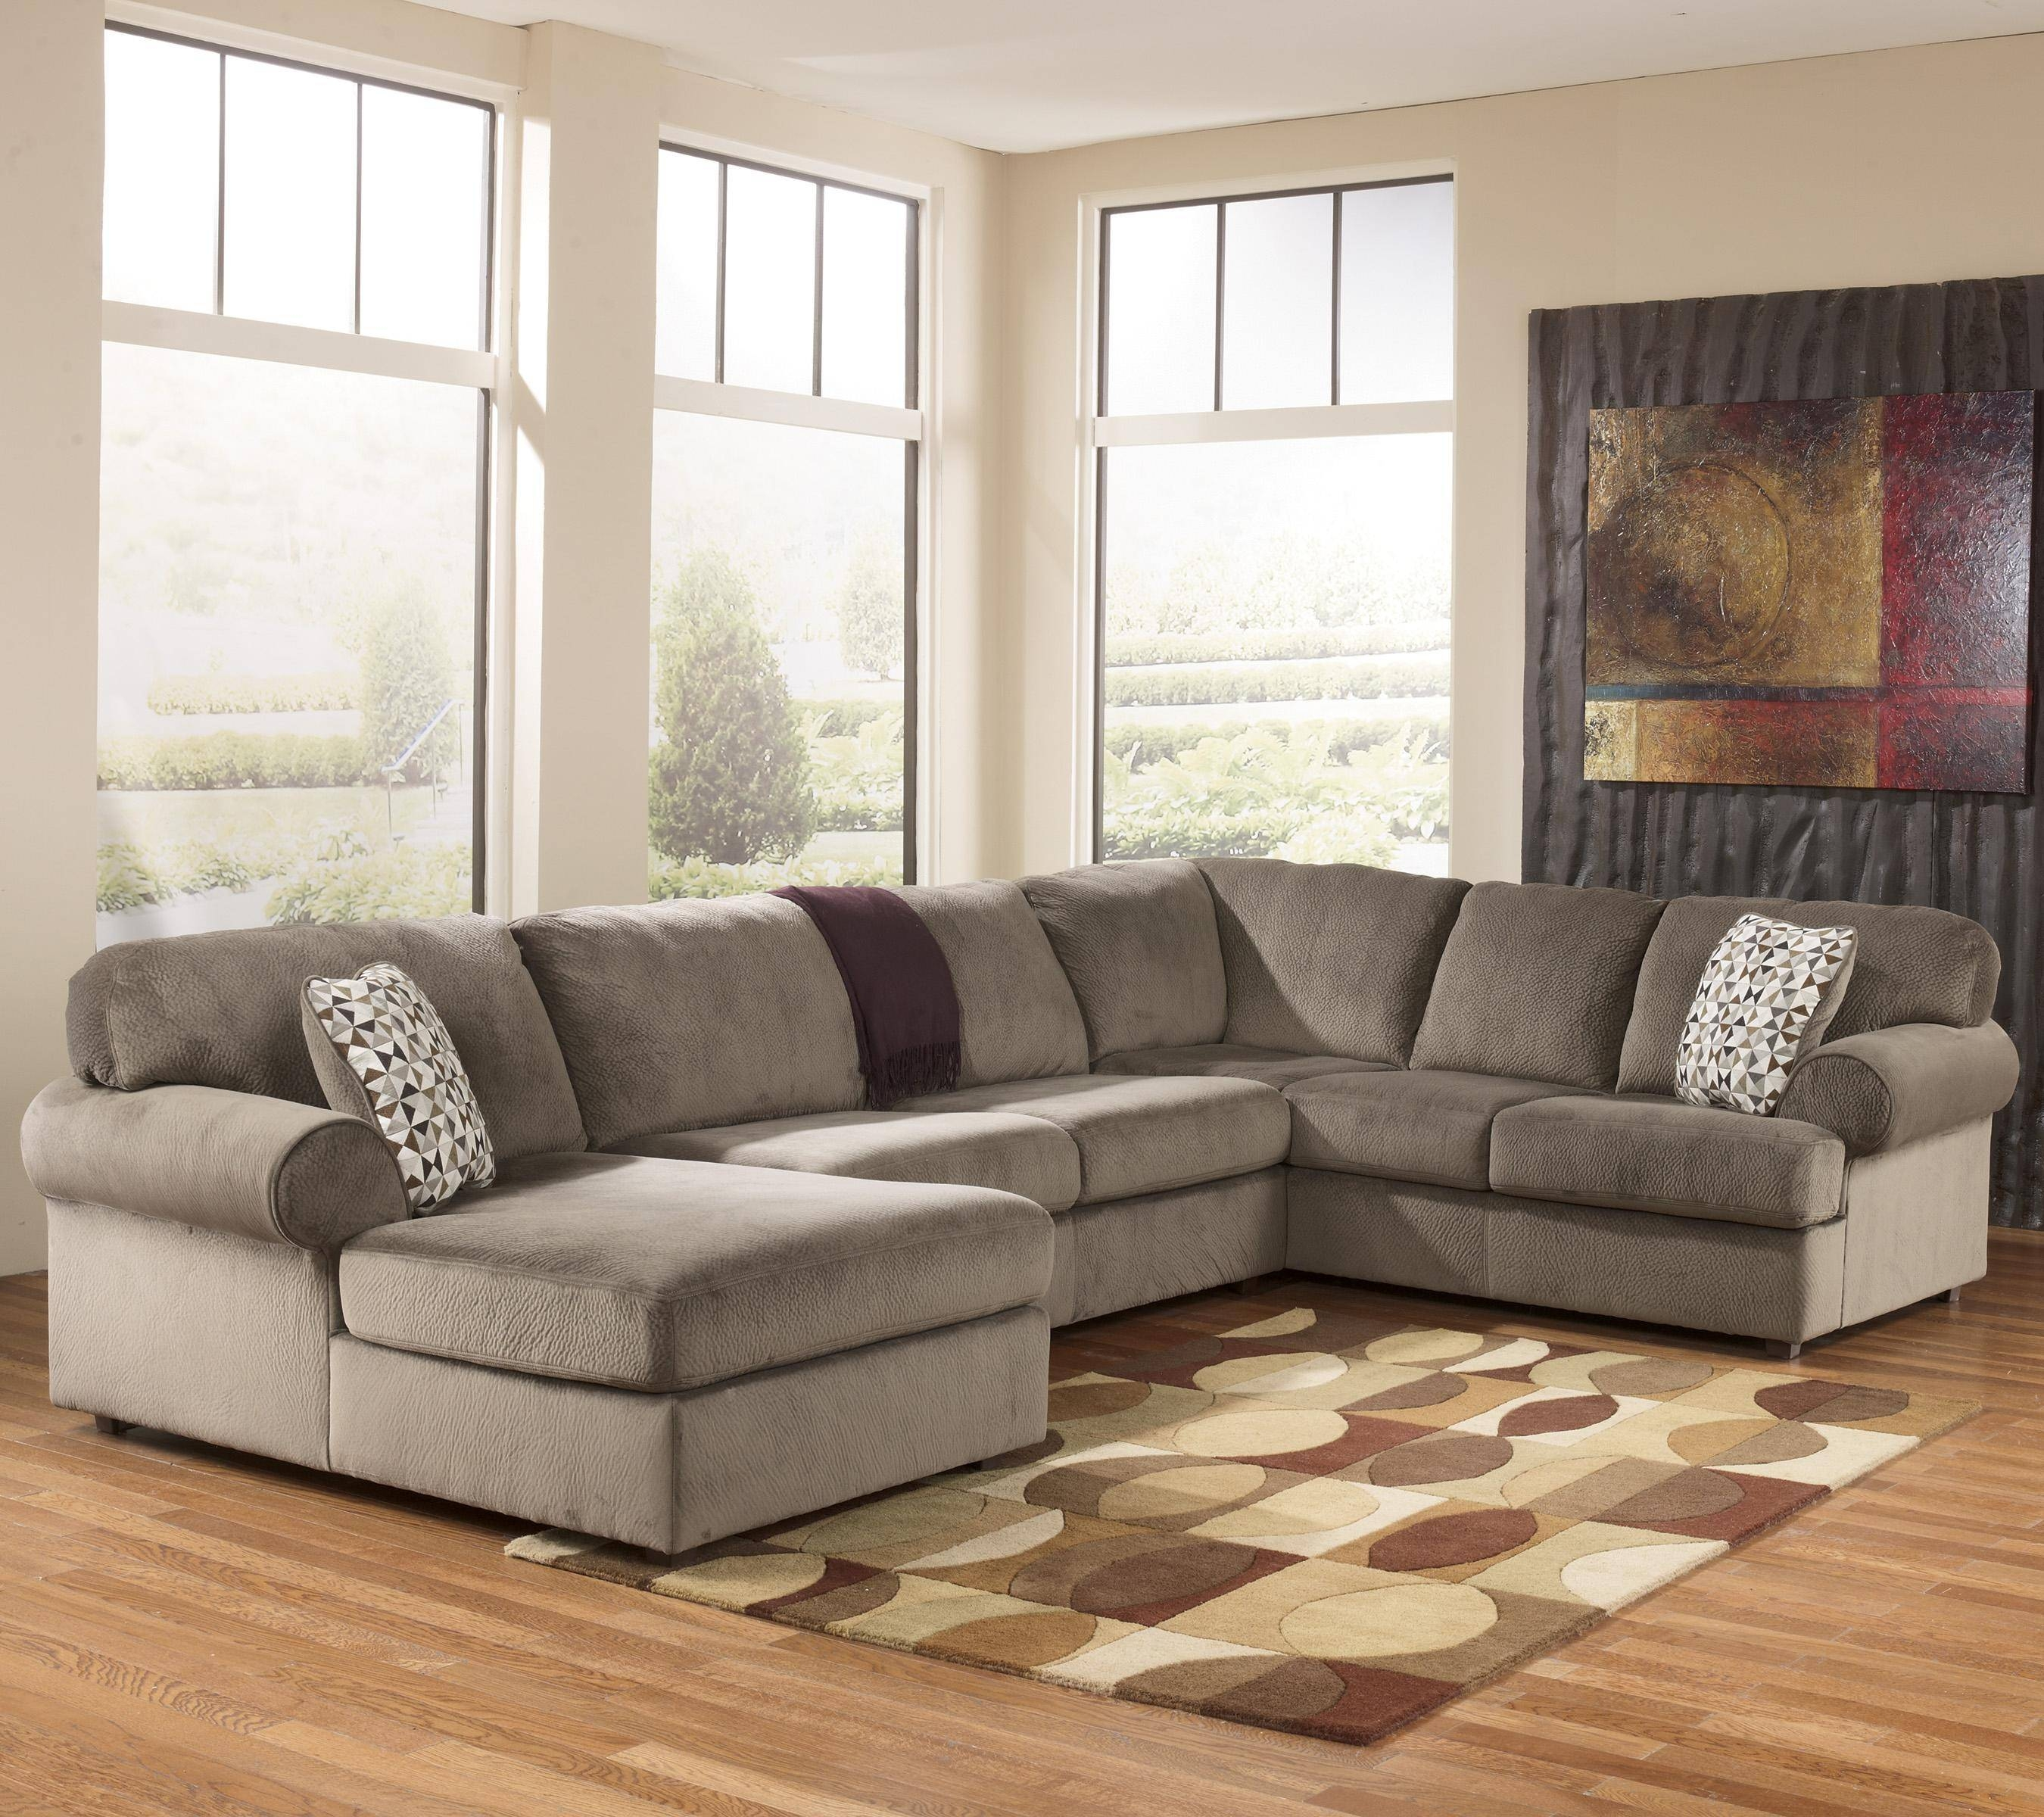 Casual Sectional Sofa With Left Chaisesignature Design with regard to Signature Design Sectional Sofas (Image 2 of 15)